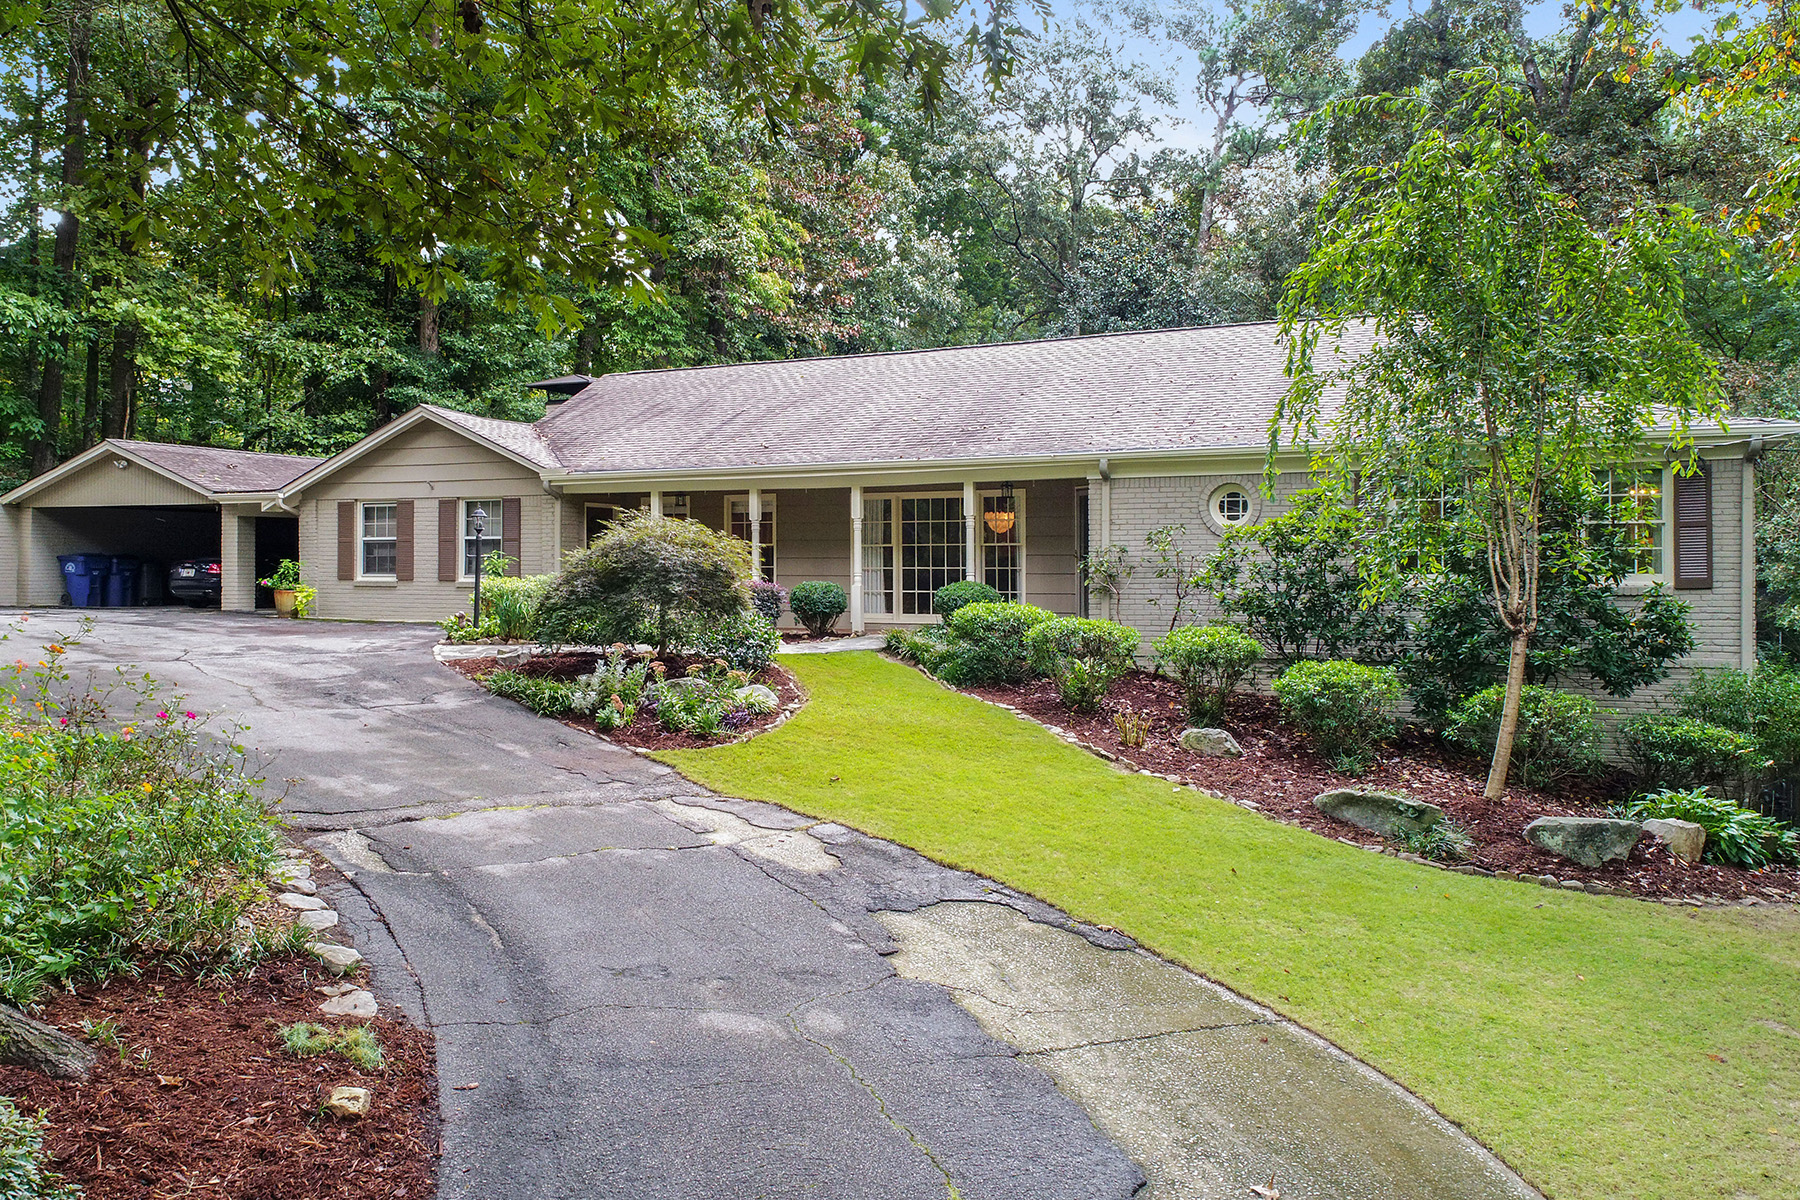 Single Family Home for Sale at Beautiful Ranch With Pool in Prime Mt. Paran Parkway Neighborhood 976 Swathmore Dr Atlanta, Georgia 30327 United States